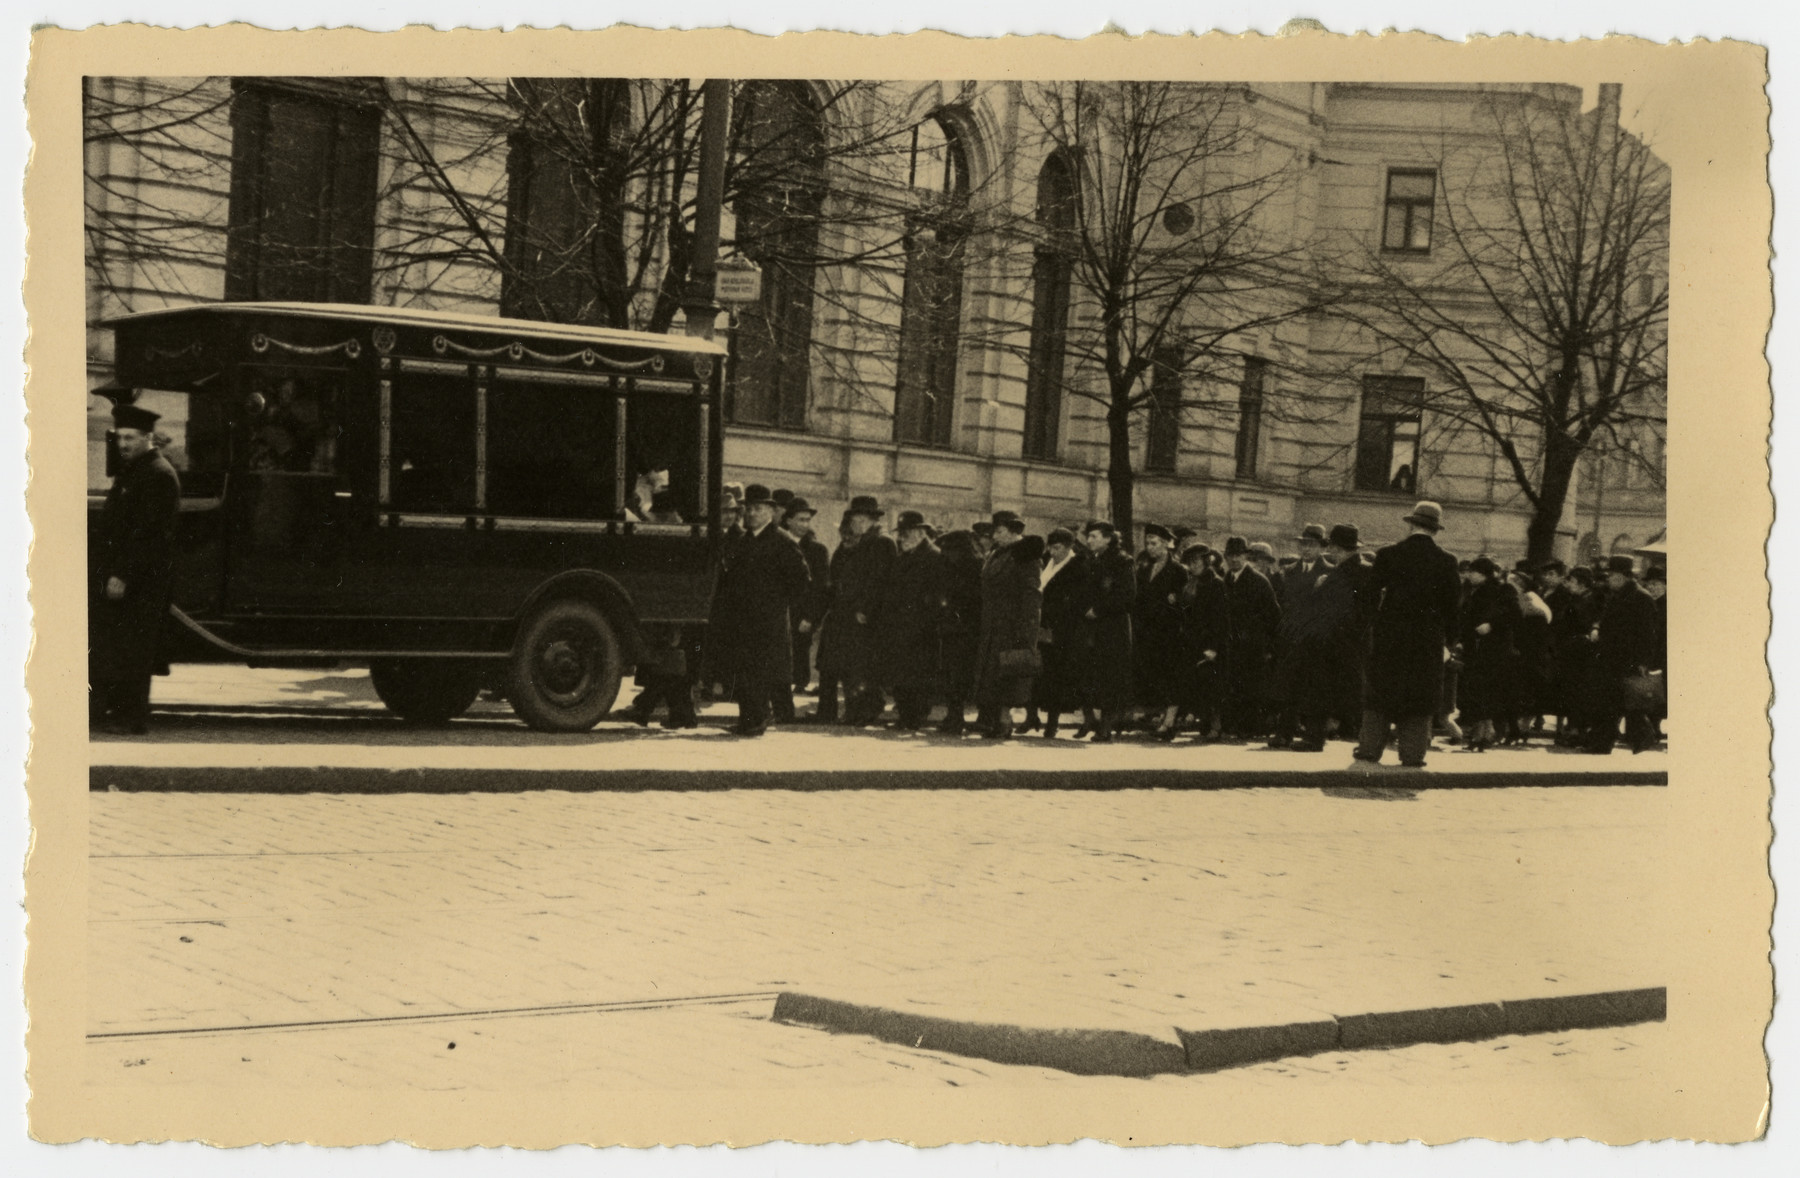 A funeral procession follows a hearse carrying the body of Freida Albin.